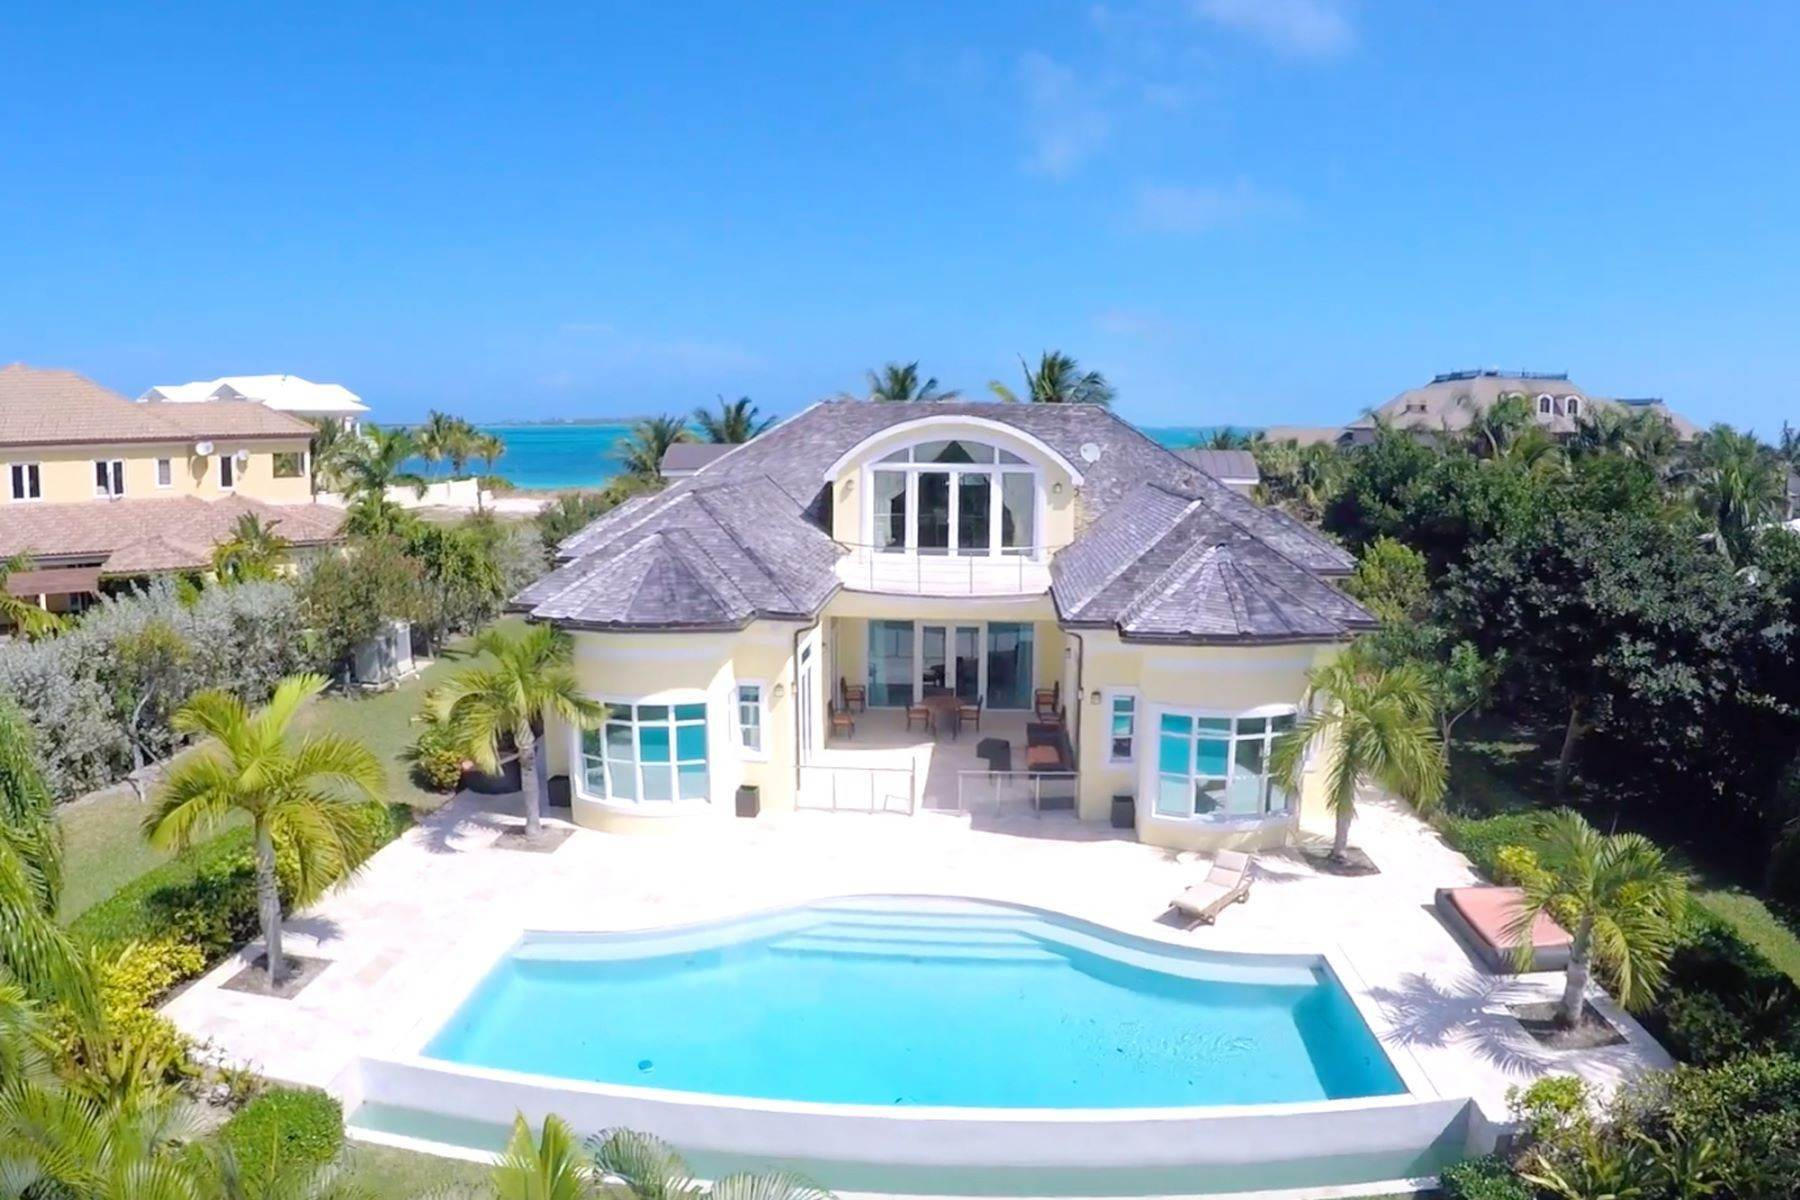 Single Family Homes for Sale at Ocean Club Estates #22 Ocean Club Estates, Paradise Island, Nassau And Paradise Island Bahamas